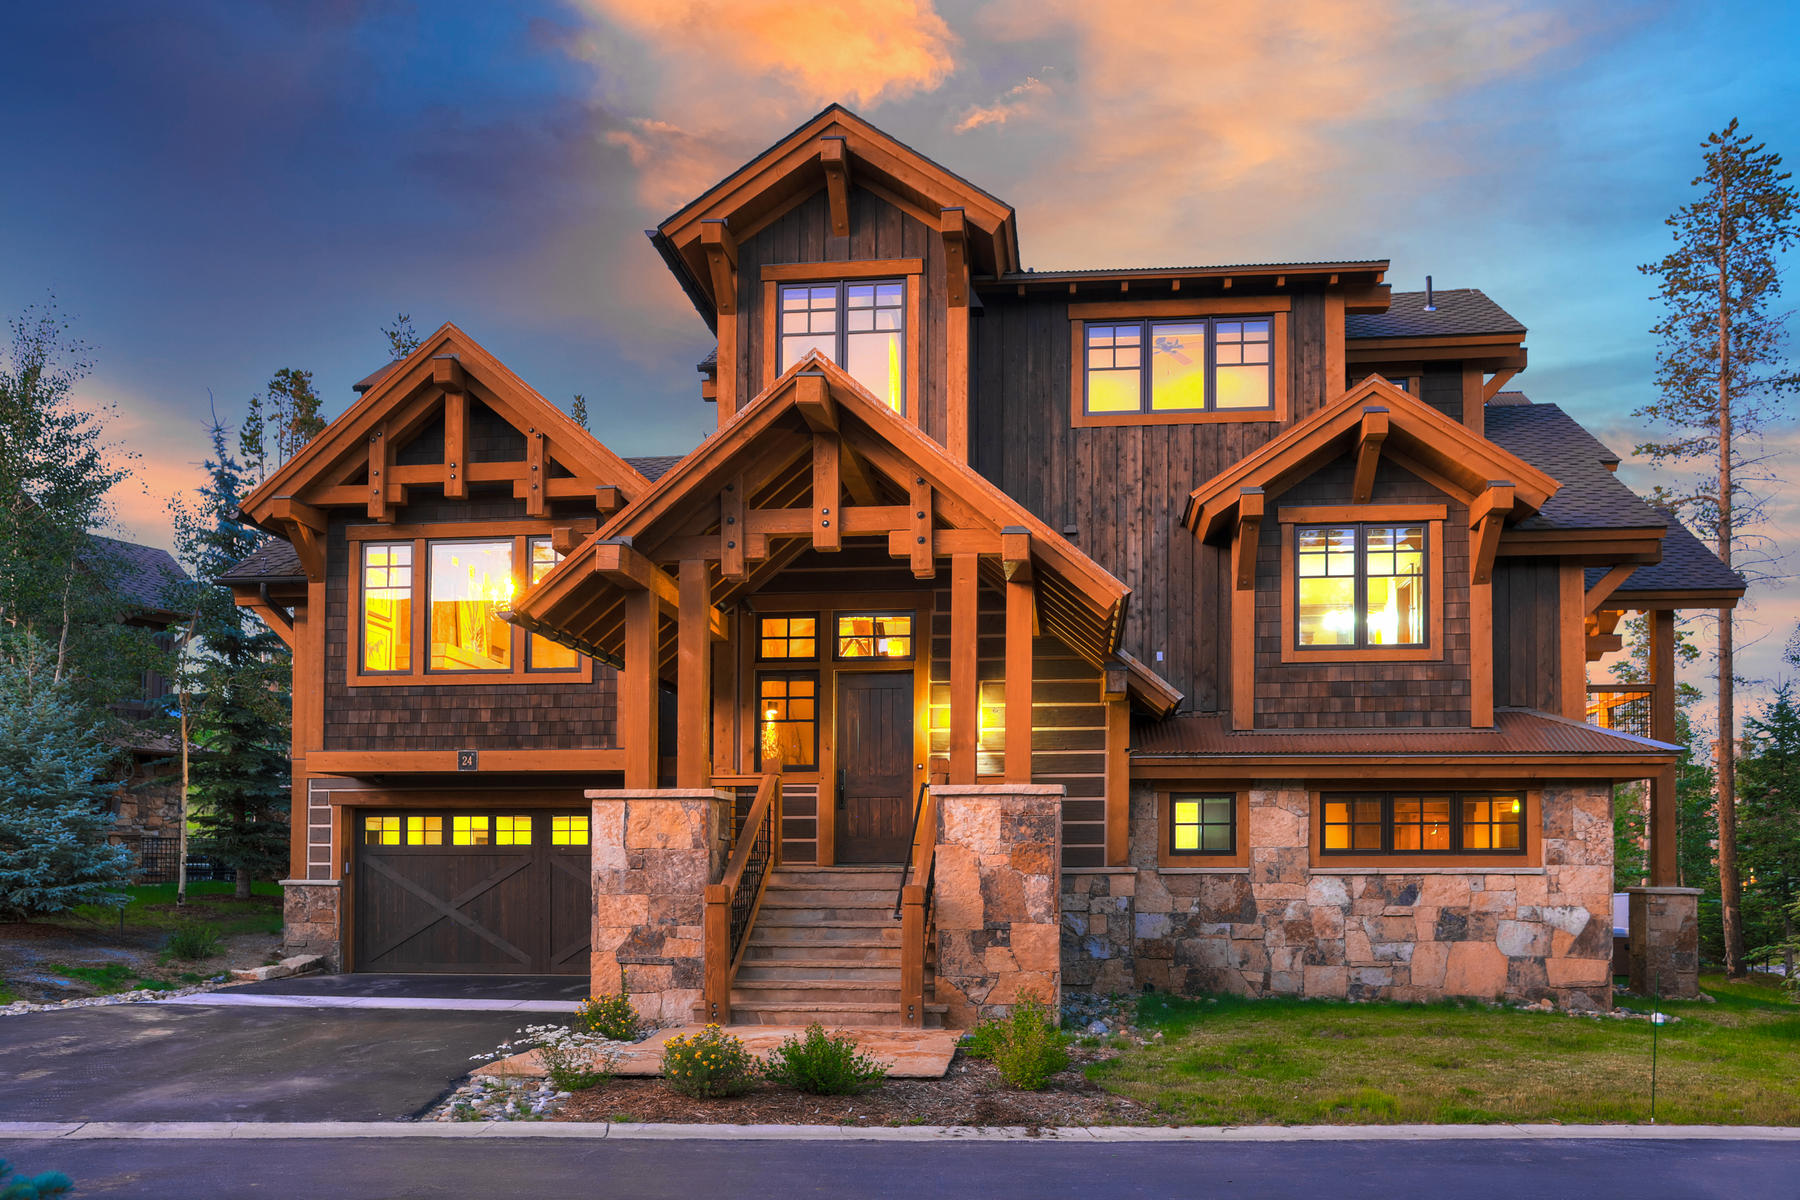 Single Family Homes for Active at Mountain Getaway in Shock Hill 24 Regent Drive Breckenridge, Colorado 80424 United States